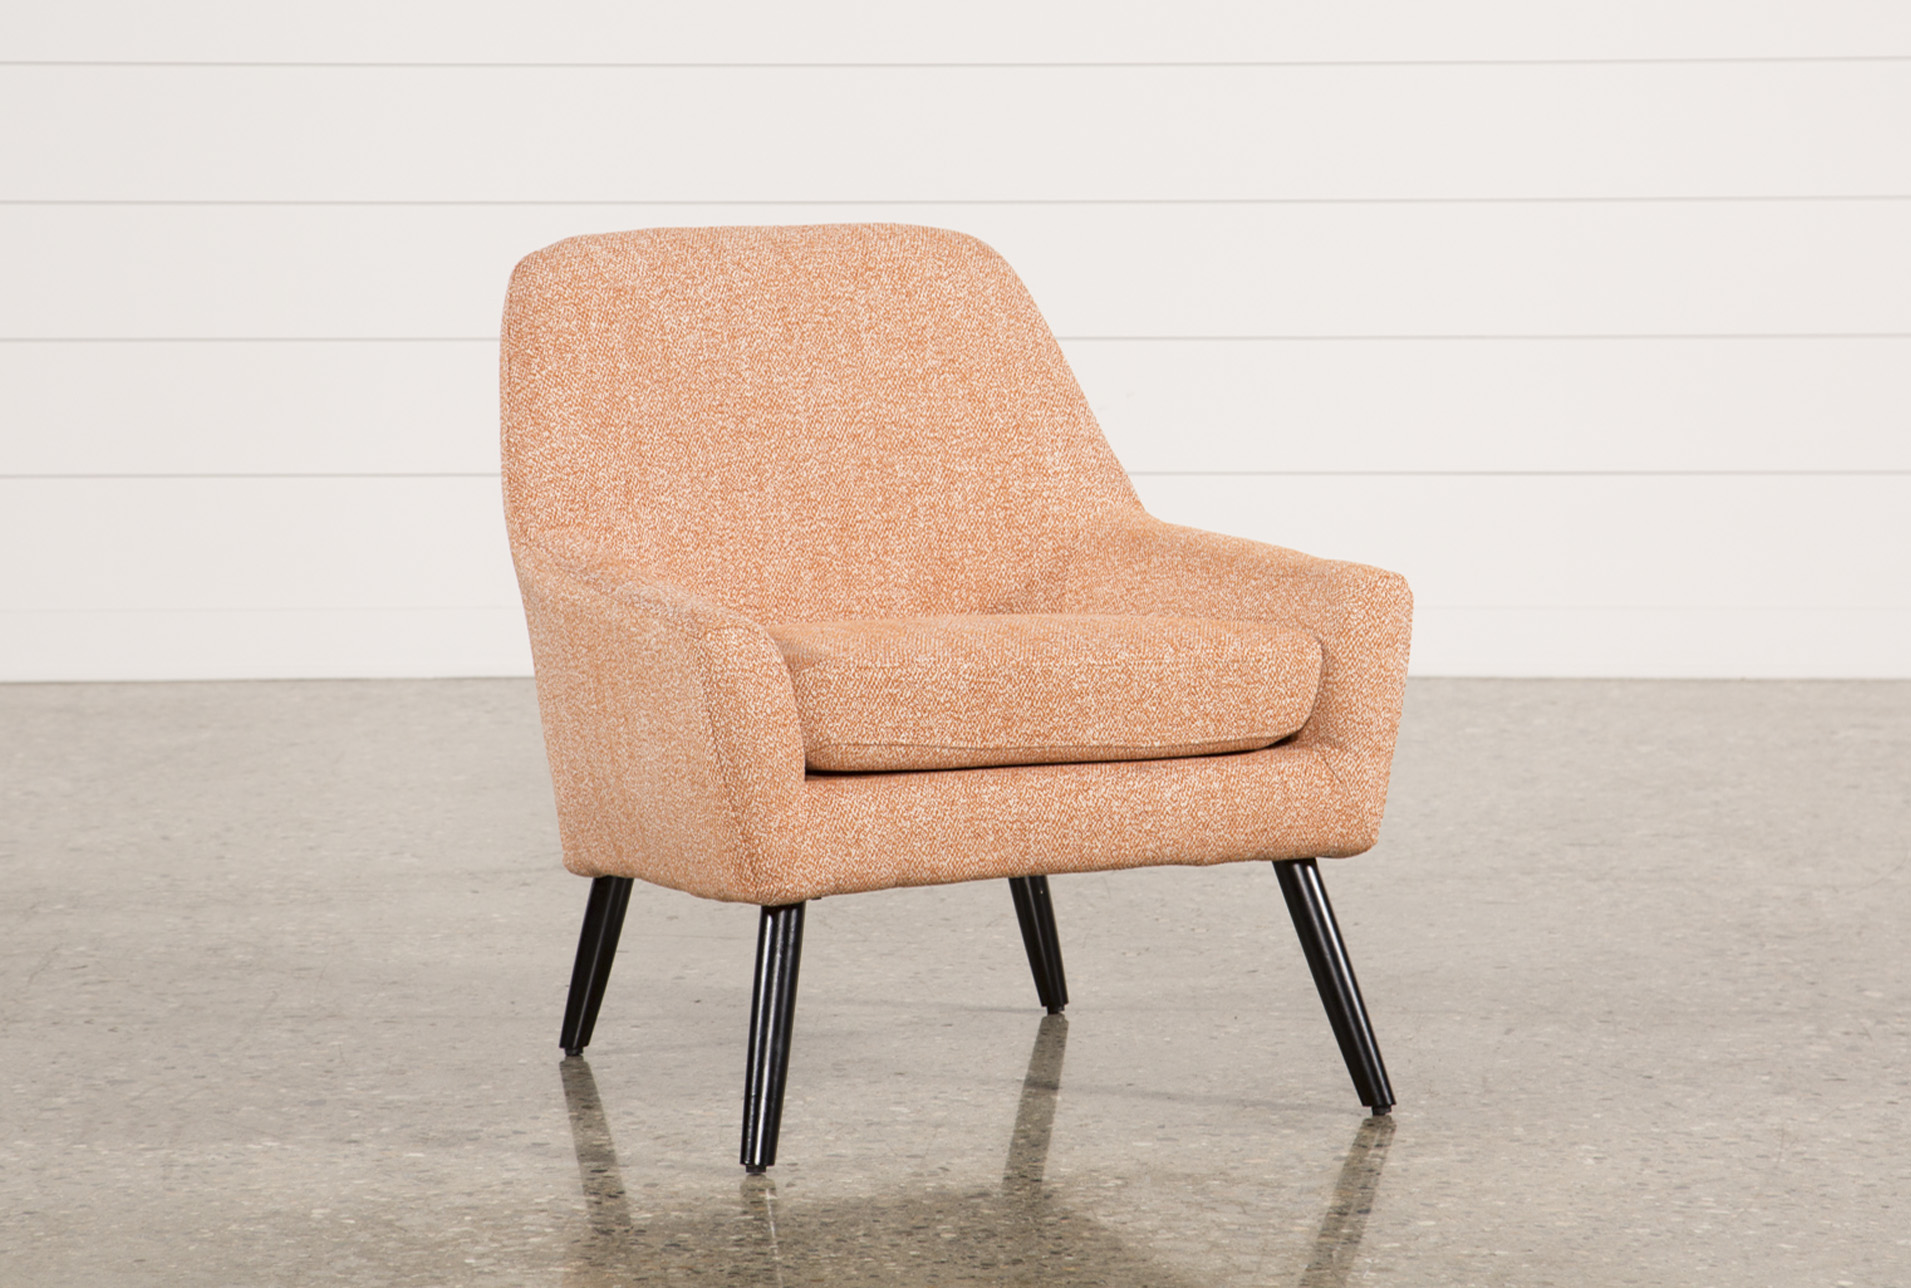 Awesome Orange Accent Chair Design